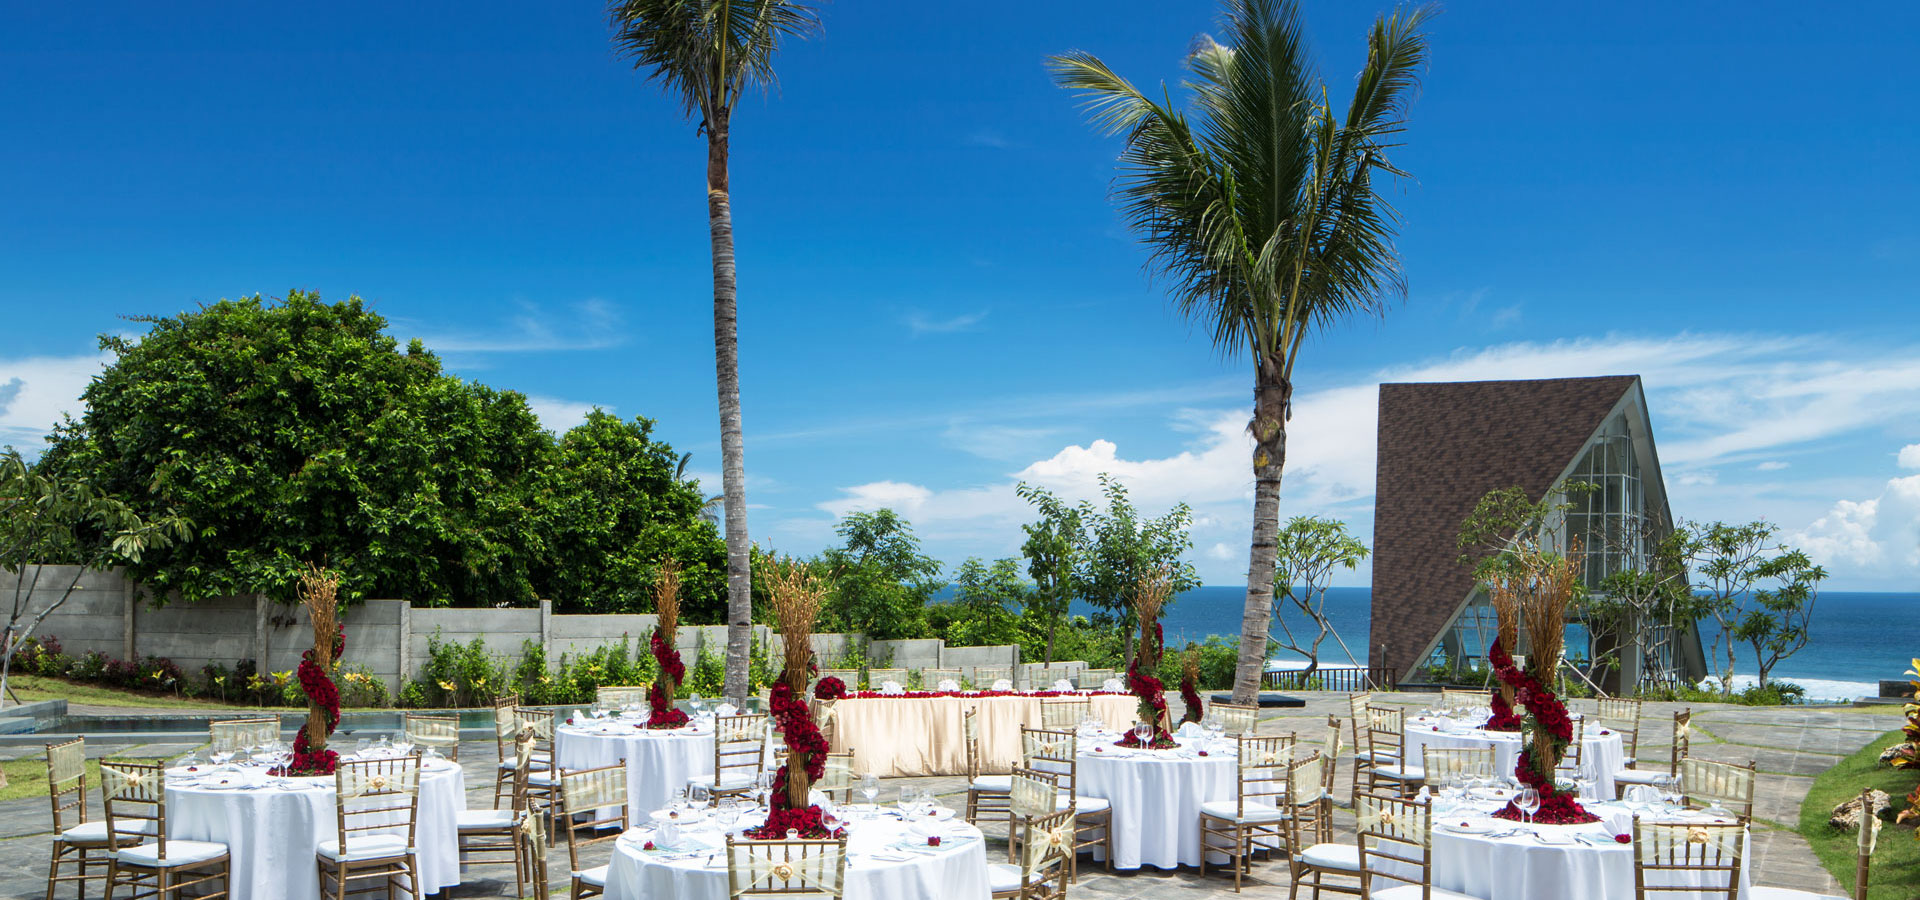 Bali Wedding Exclusive Event Venue Special Offer